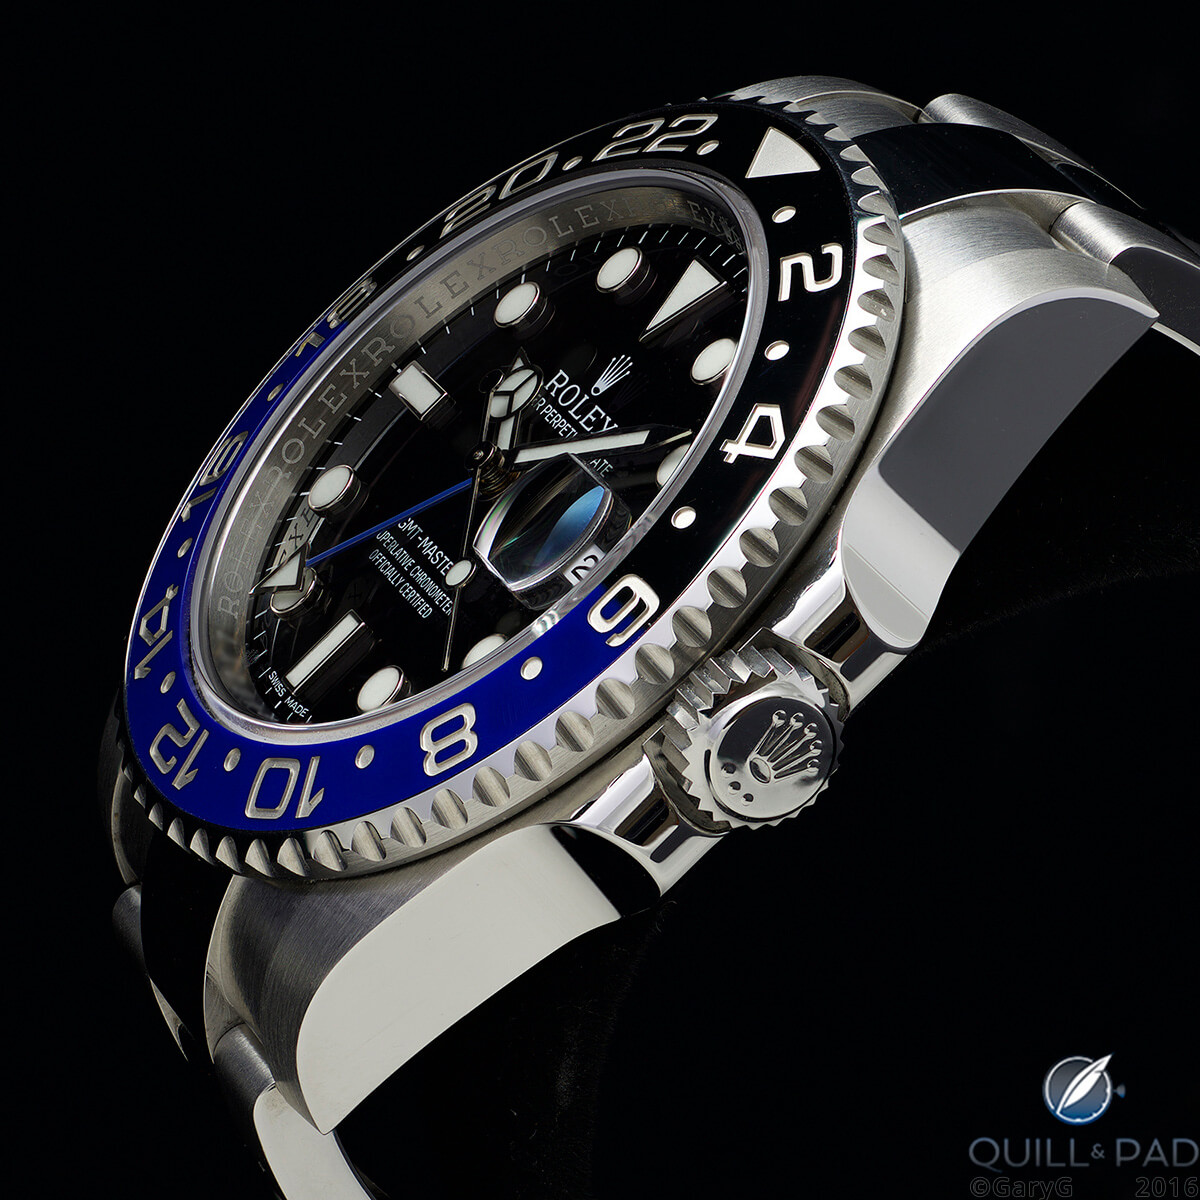 Rolex GMT Master II: too hot, too cold, or just right?